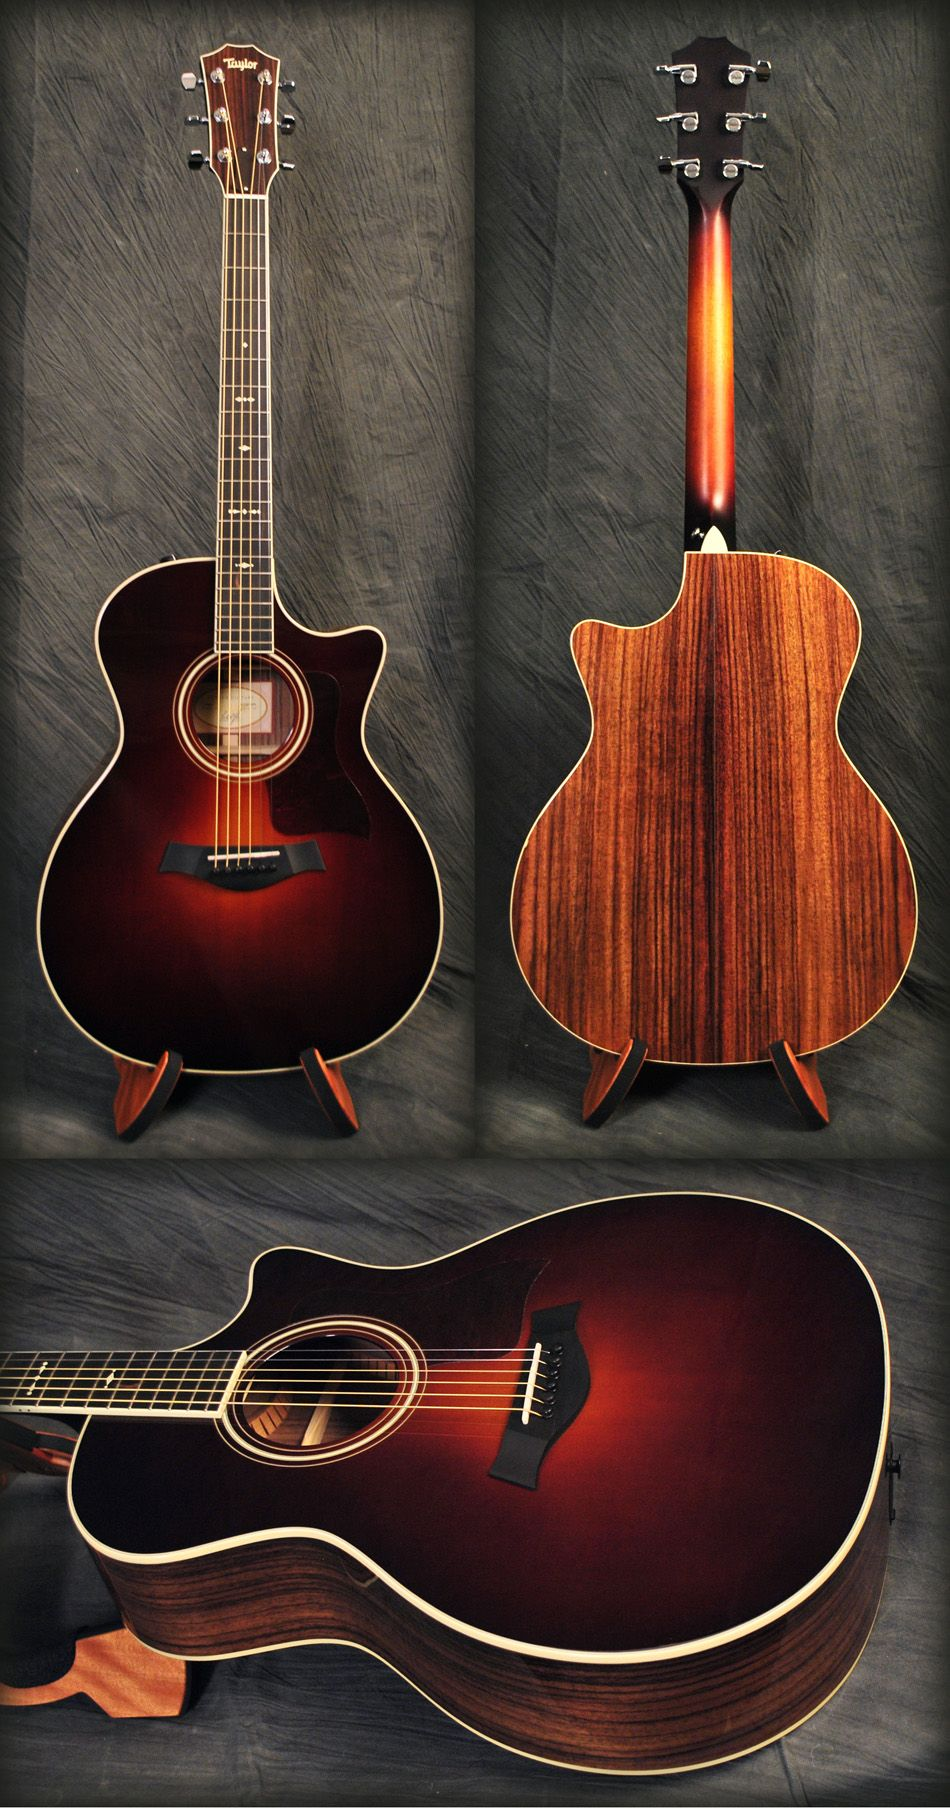 taylor 714ce acoustic guitar in vintage sunburst sweet get 10 off this guitar or anything. Black Bedroom Furniture Sets. Home Design Ideas